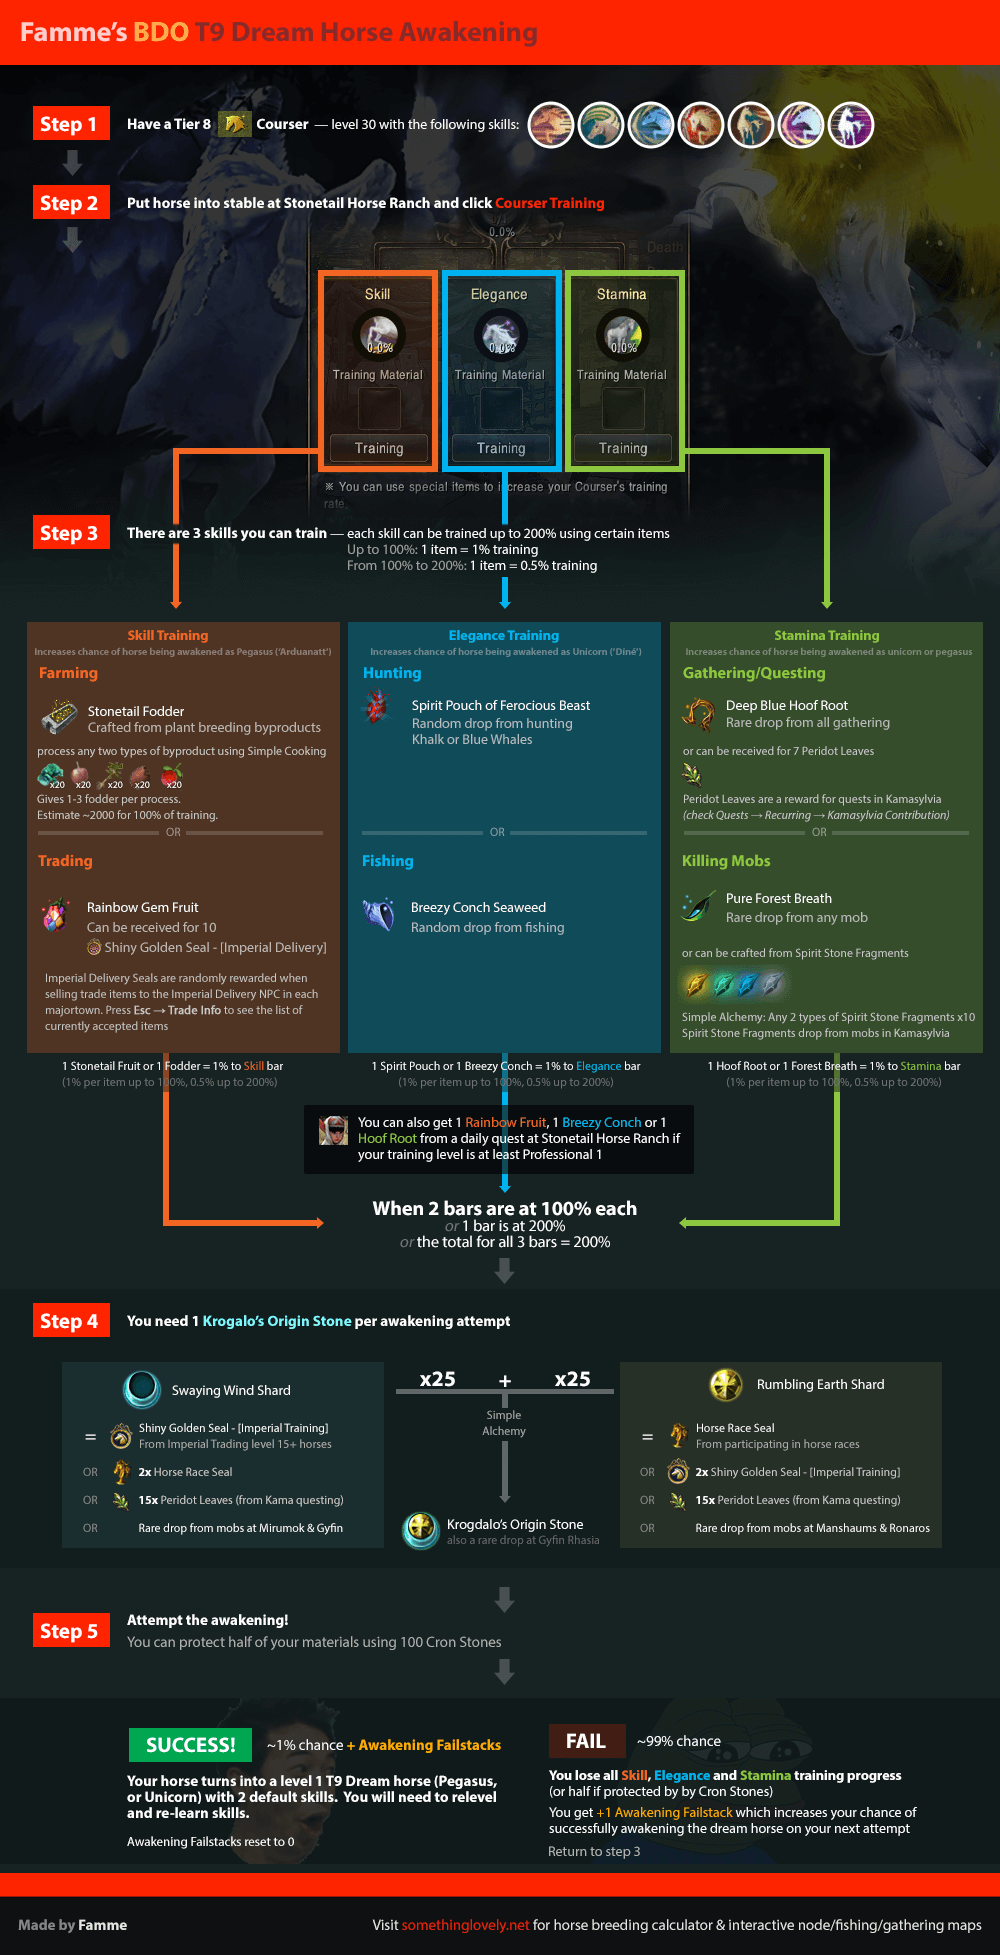 Guide: How to Minimize Spending While Making your T8 a